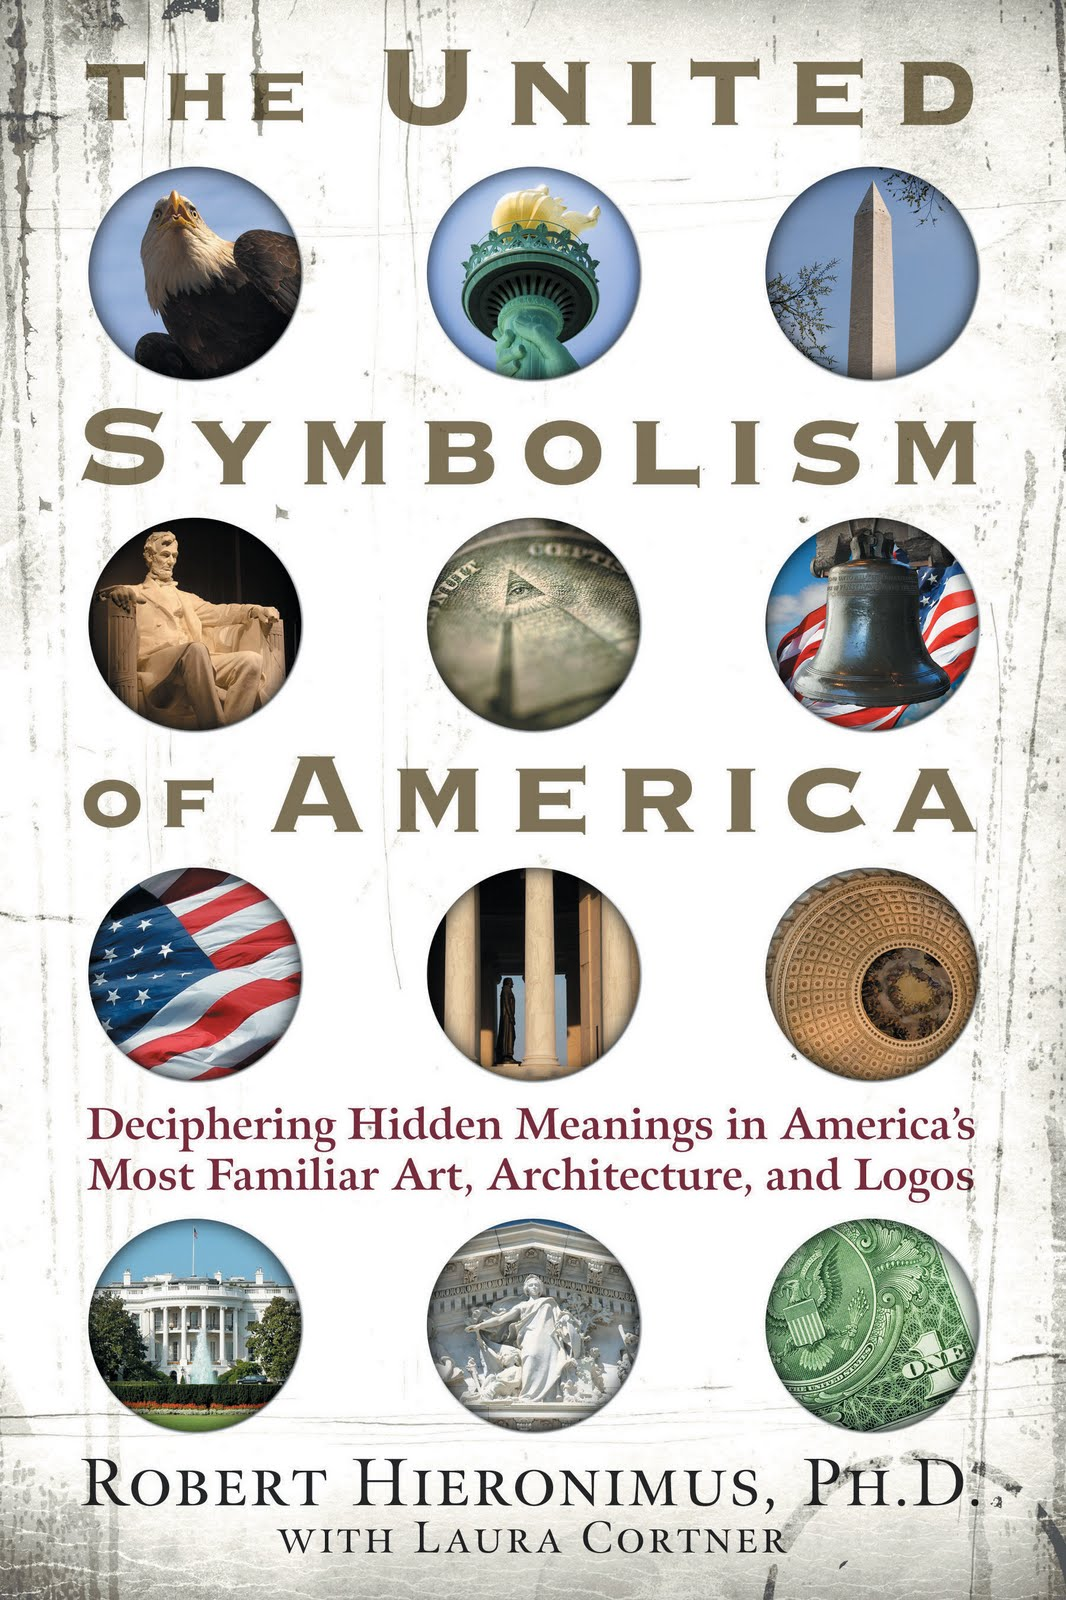 New page books the symbolism and meaning behind our flag given that its july 4th weekend in the united states and we are in the midst of celebrating our independence i thought it might be a good time to share buycottarizona